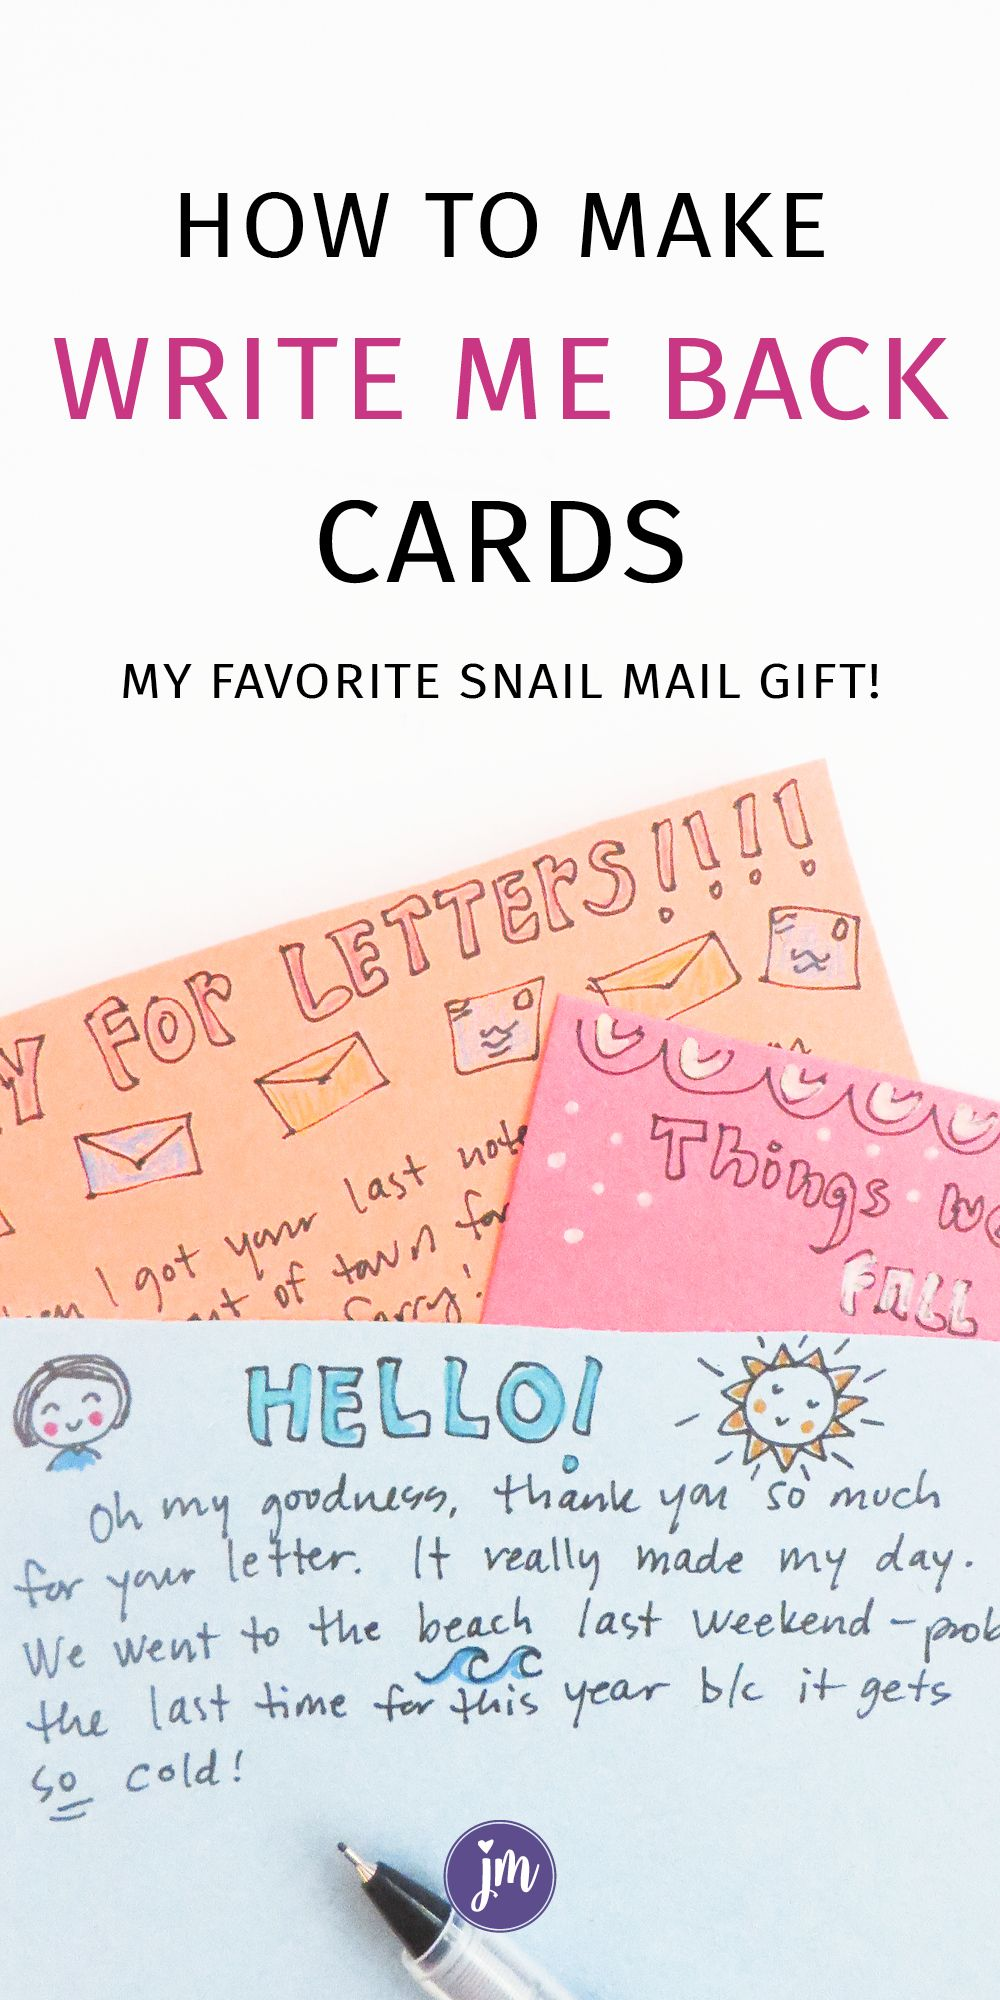 Write Me Back A Simple Gift Idea Snail Mail Gifts Mail Gifts